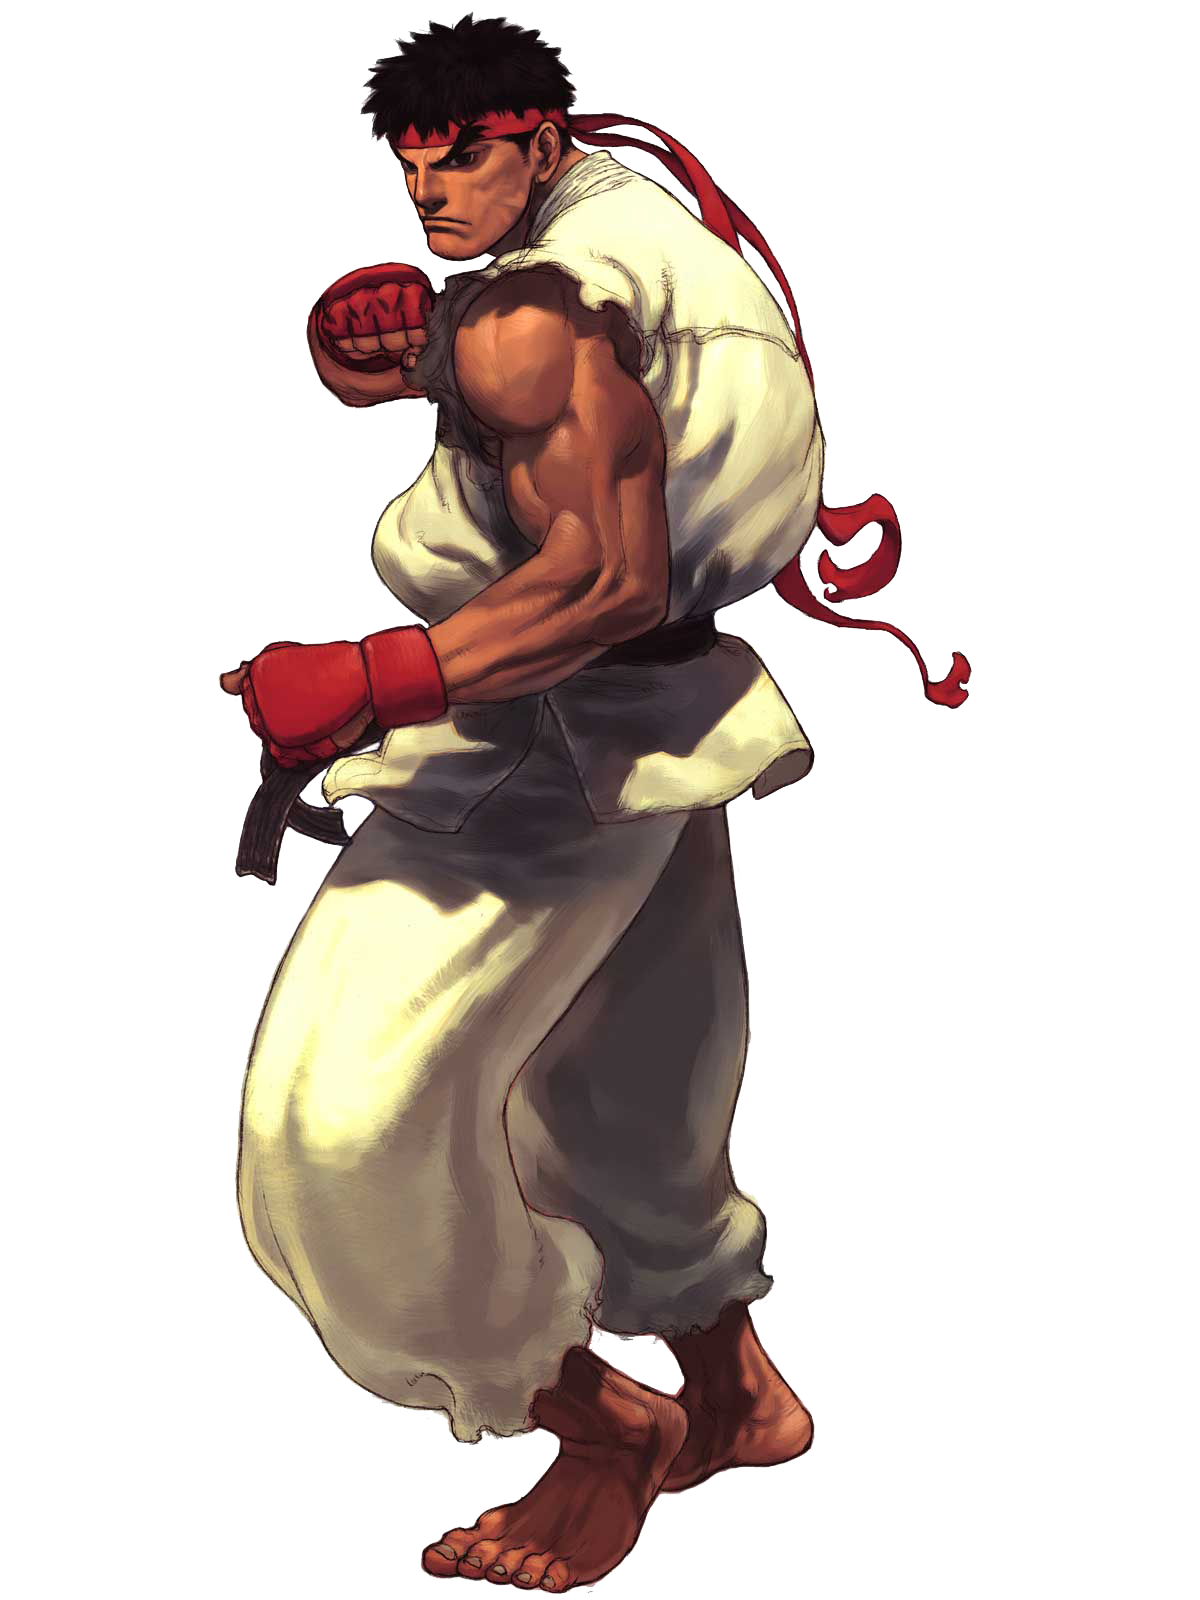 Download Ryu PNG File For Designing Projects.